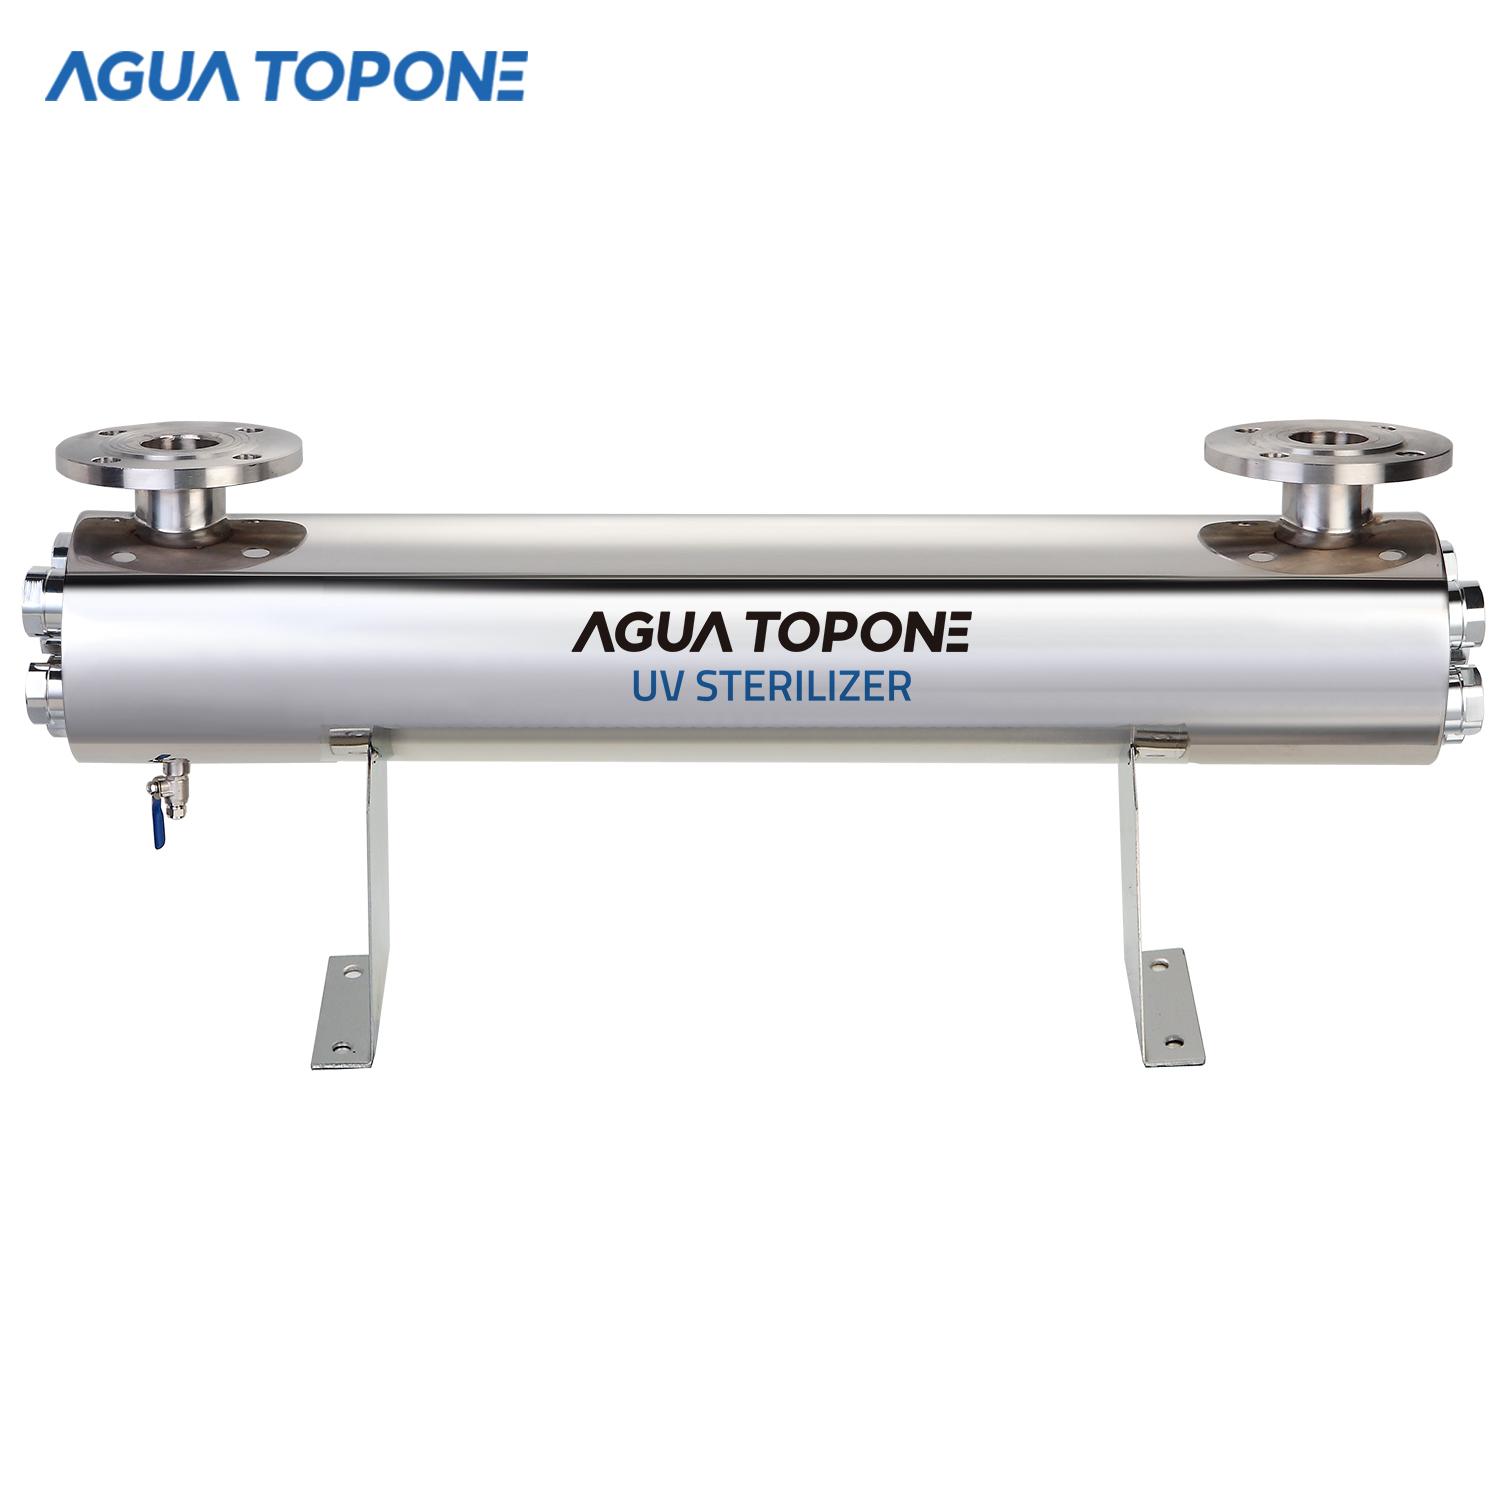 Agua Topone 220w 48gpm pond <strong>aquarium</strong> <strong>uv</strong> water <strong>sterilizer</strong> <strong>for</strong> fish tank